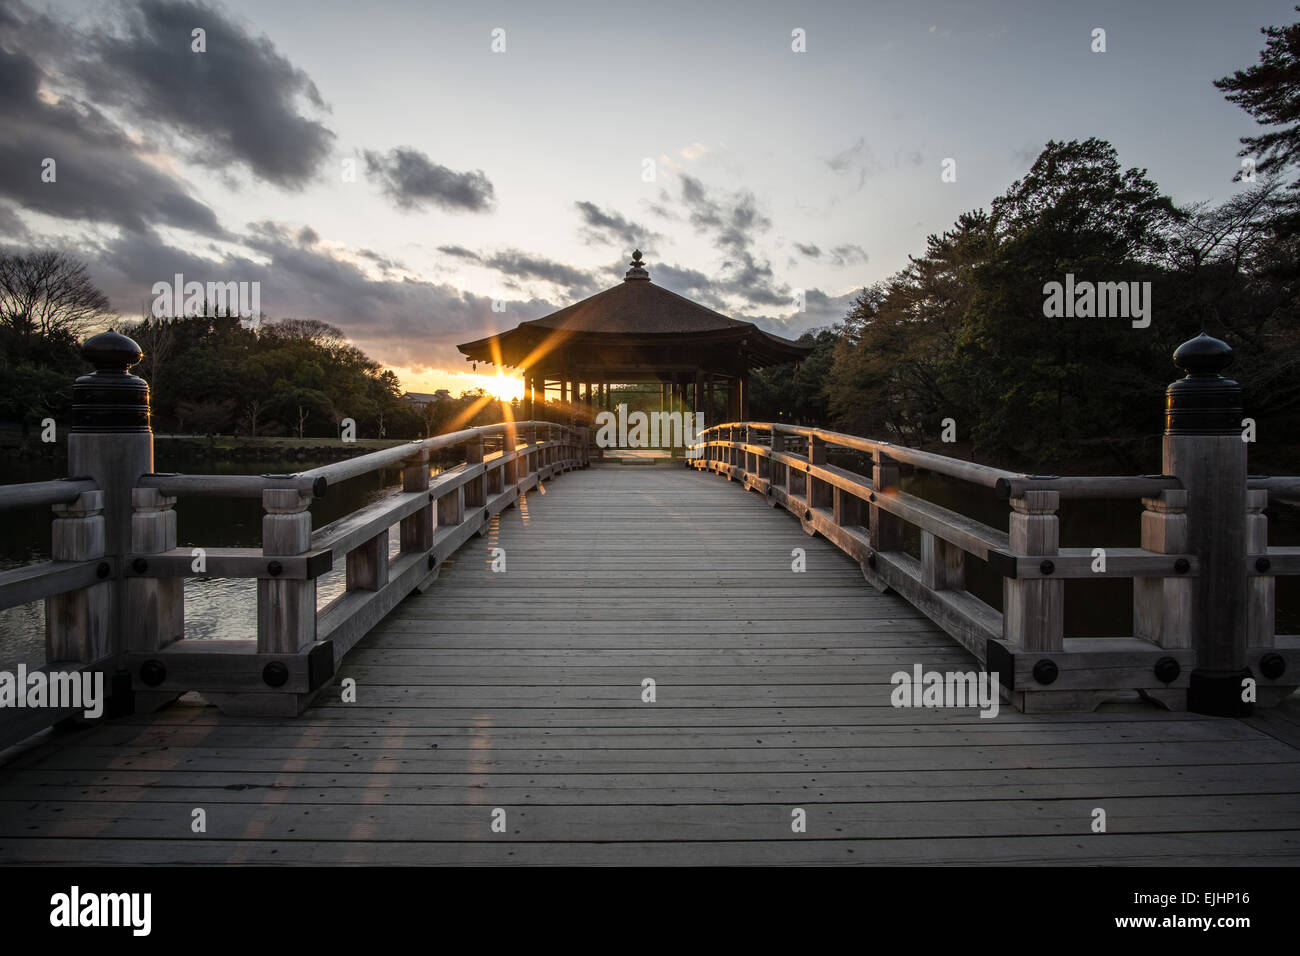 Spring sunset at Sagi Ike Pond in Nara, Japan - Stock Image